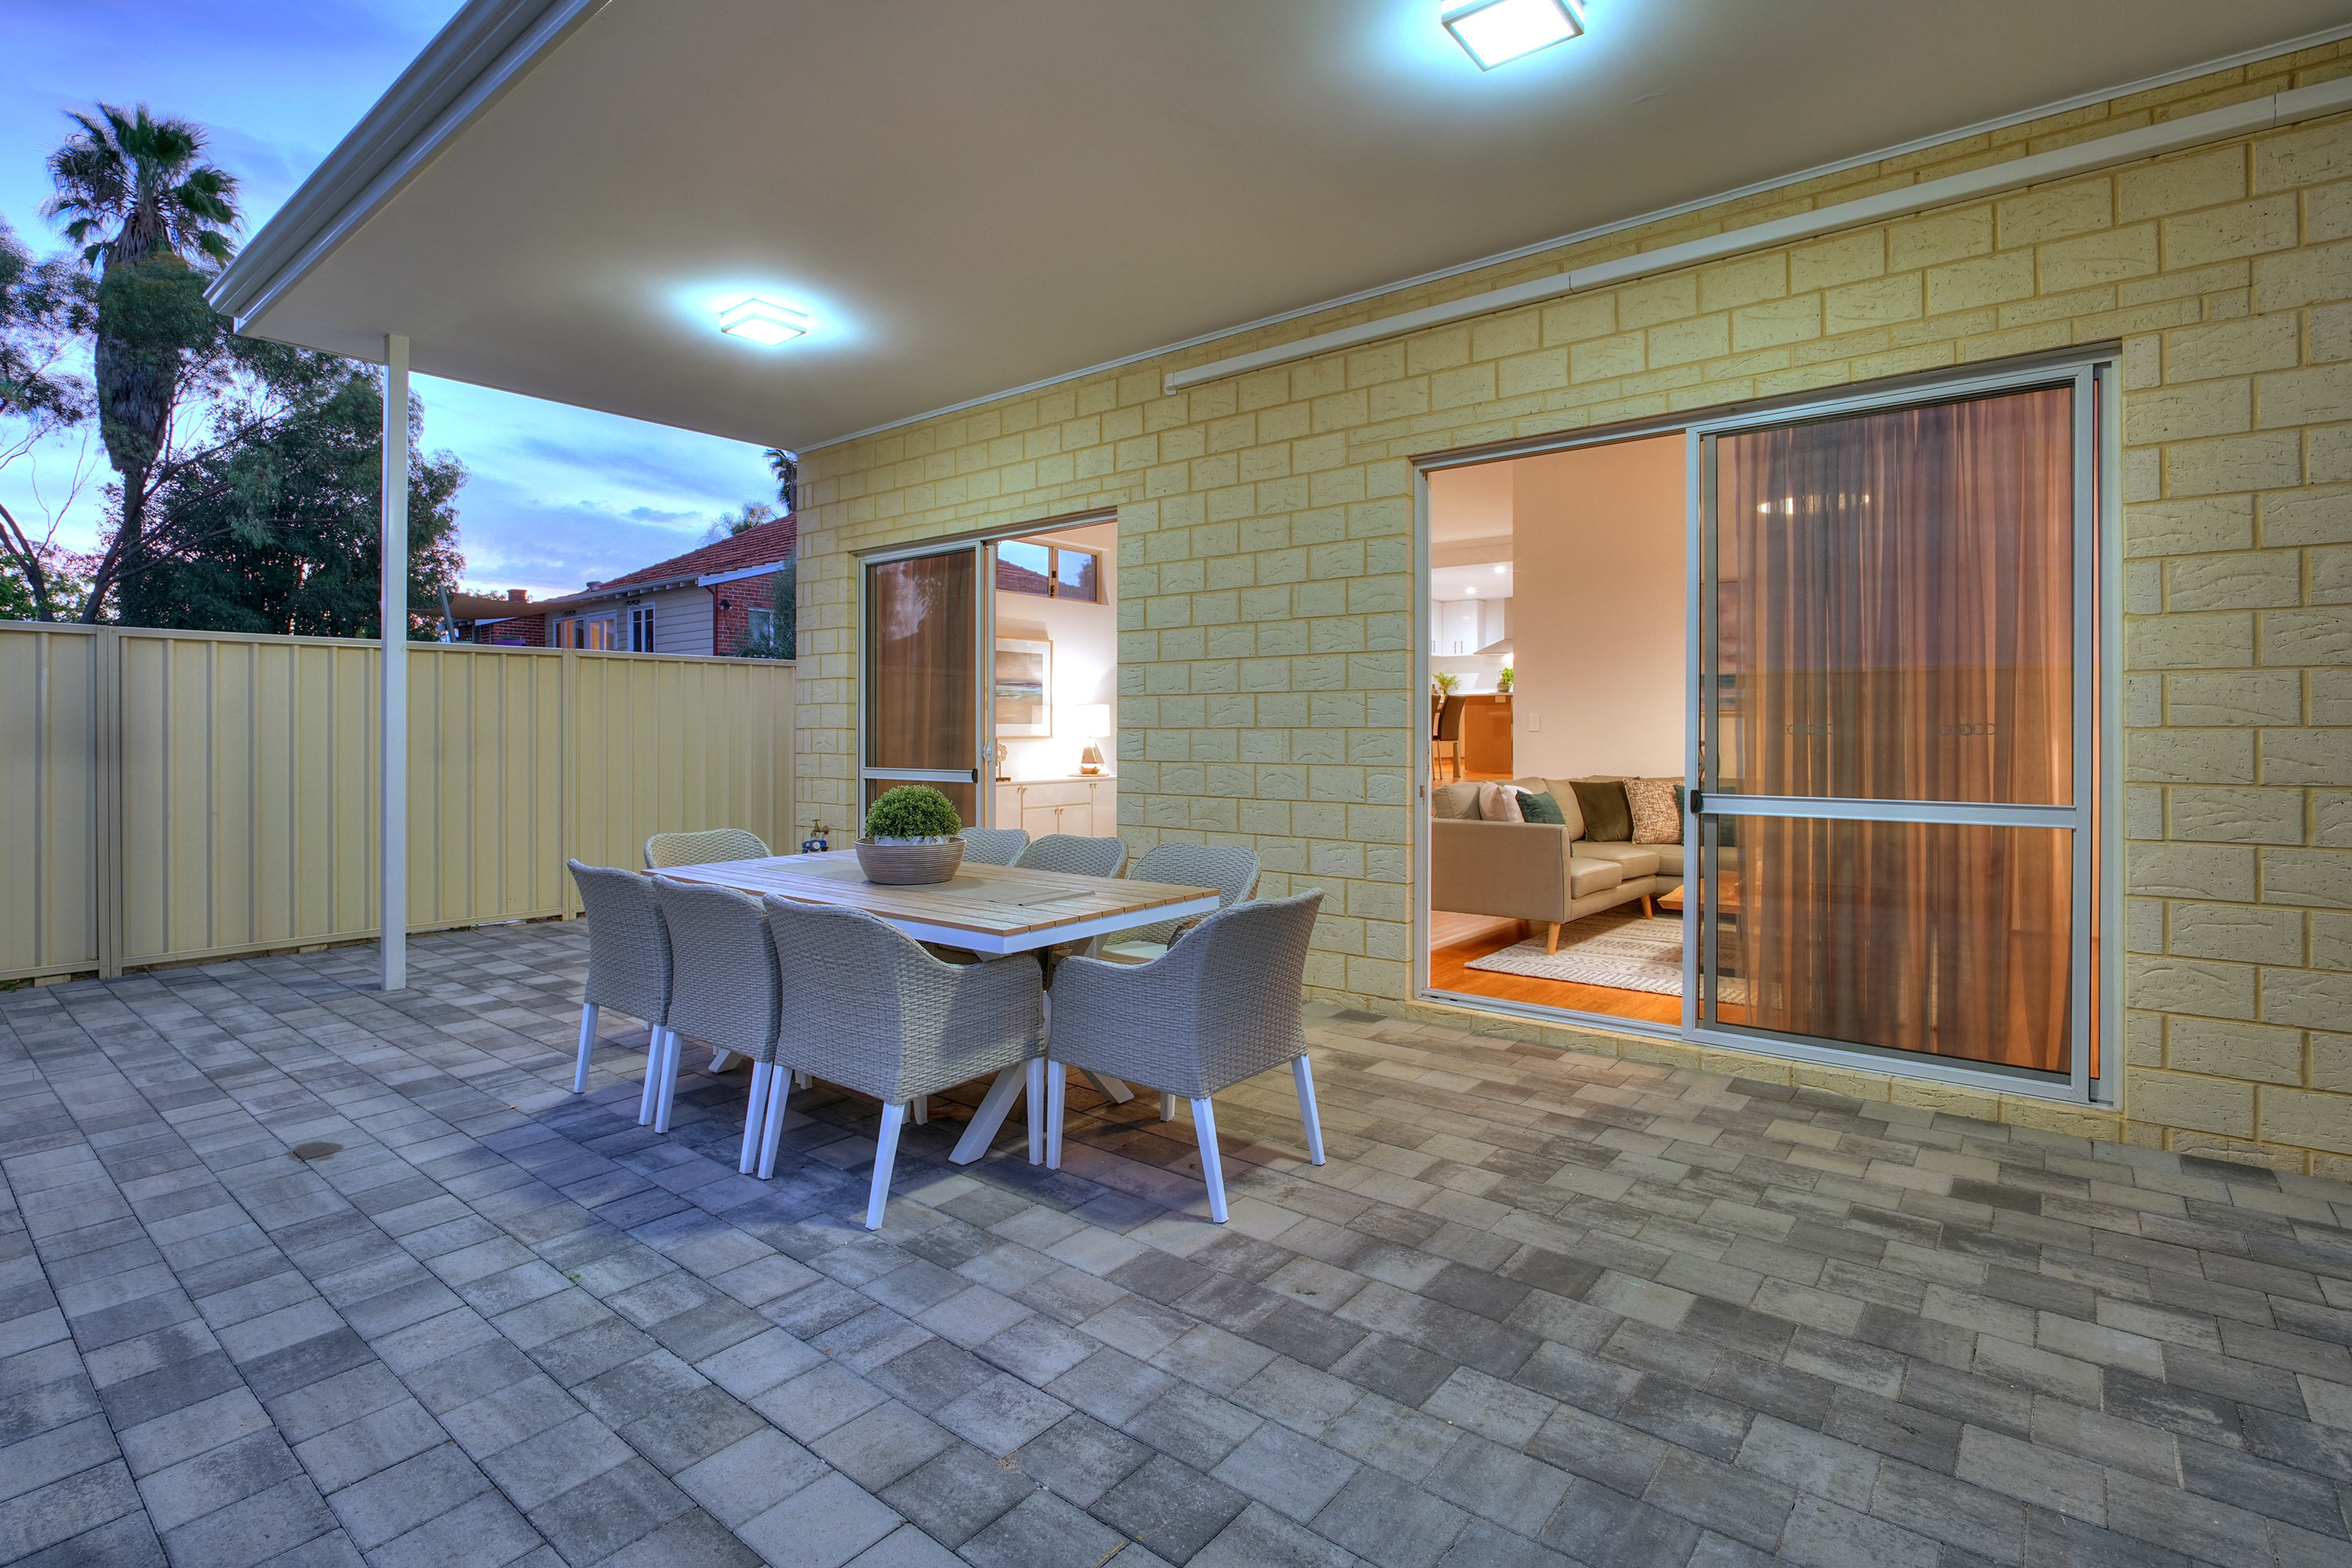 11 Wholley Street Bayswater 6053